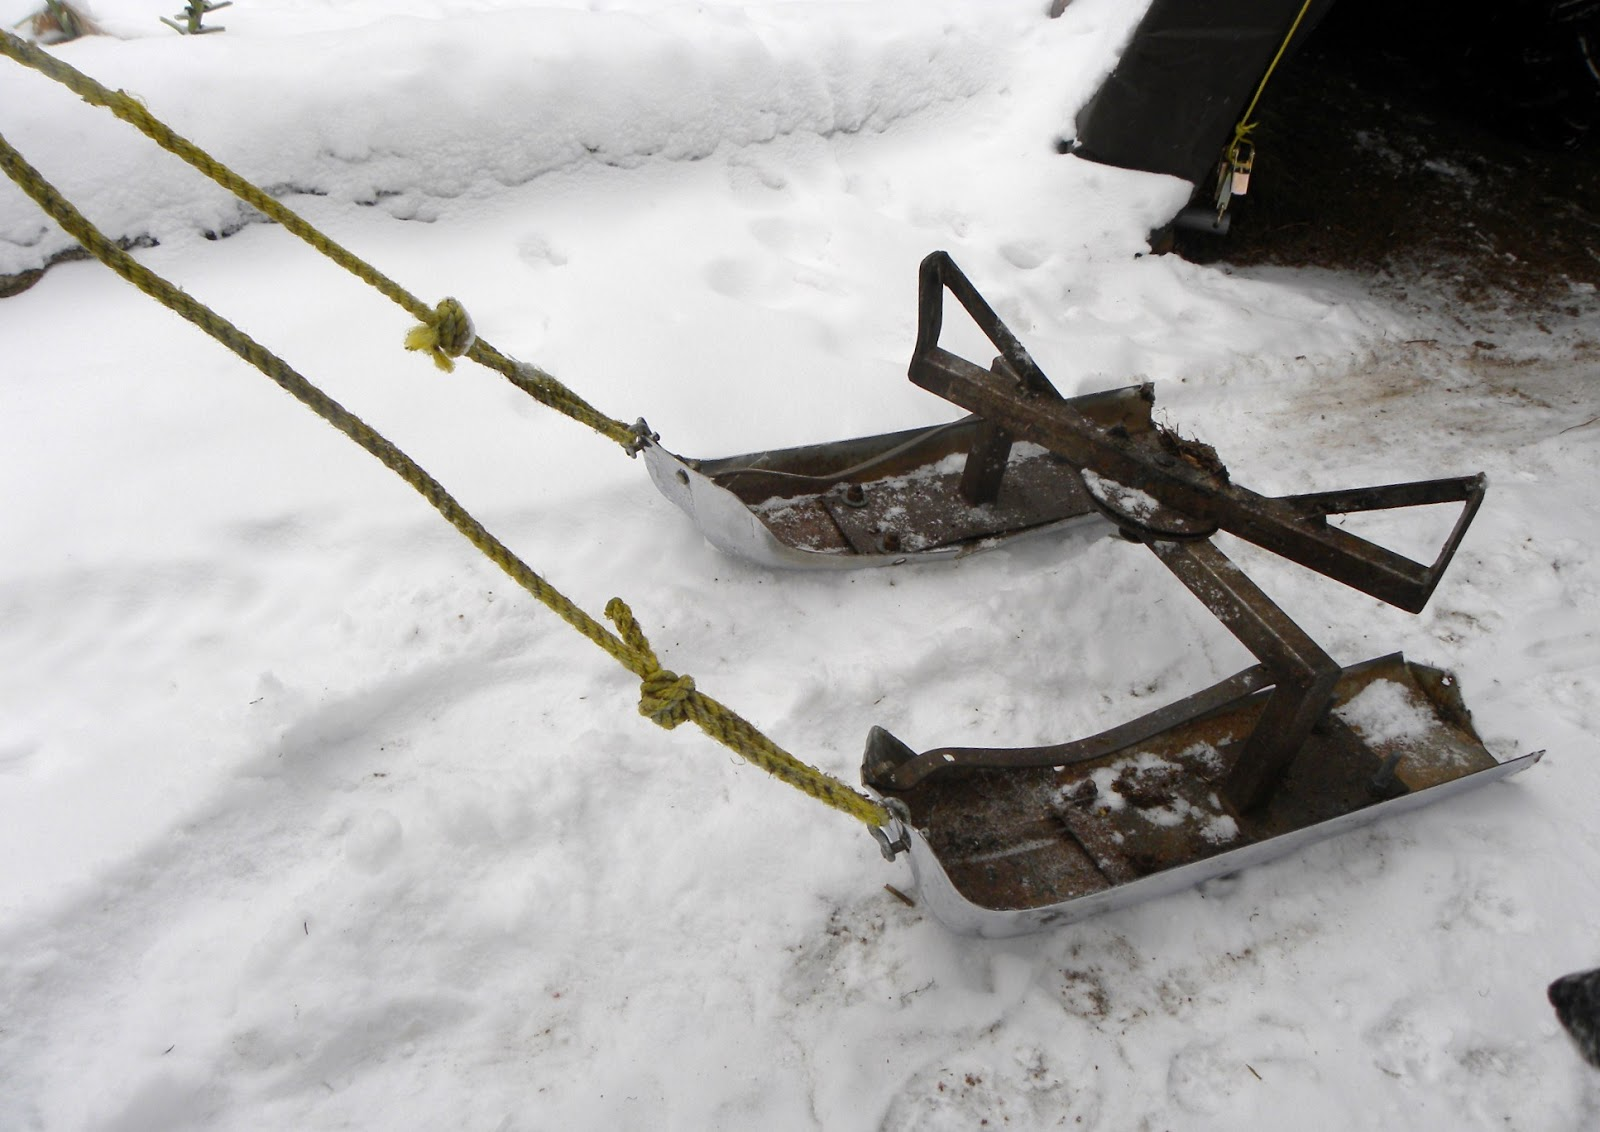 Logging Sled http://thehappytrappers2.blogspot.com/2012/11/log-sled-from-old-chrome-bumpers.html